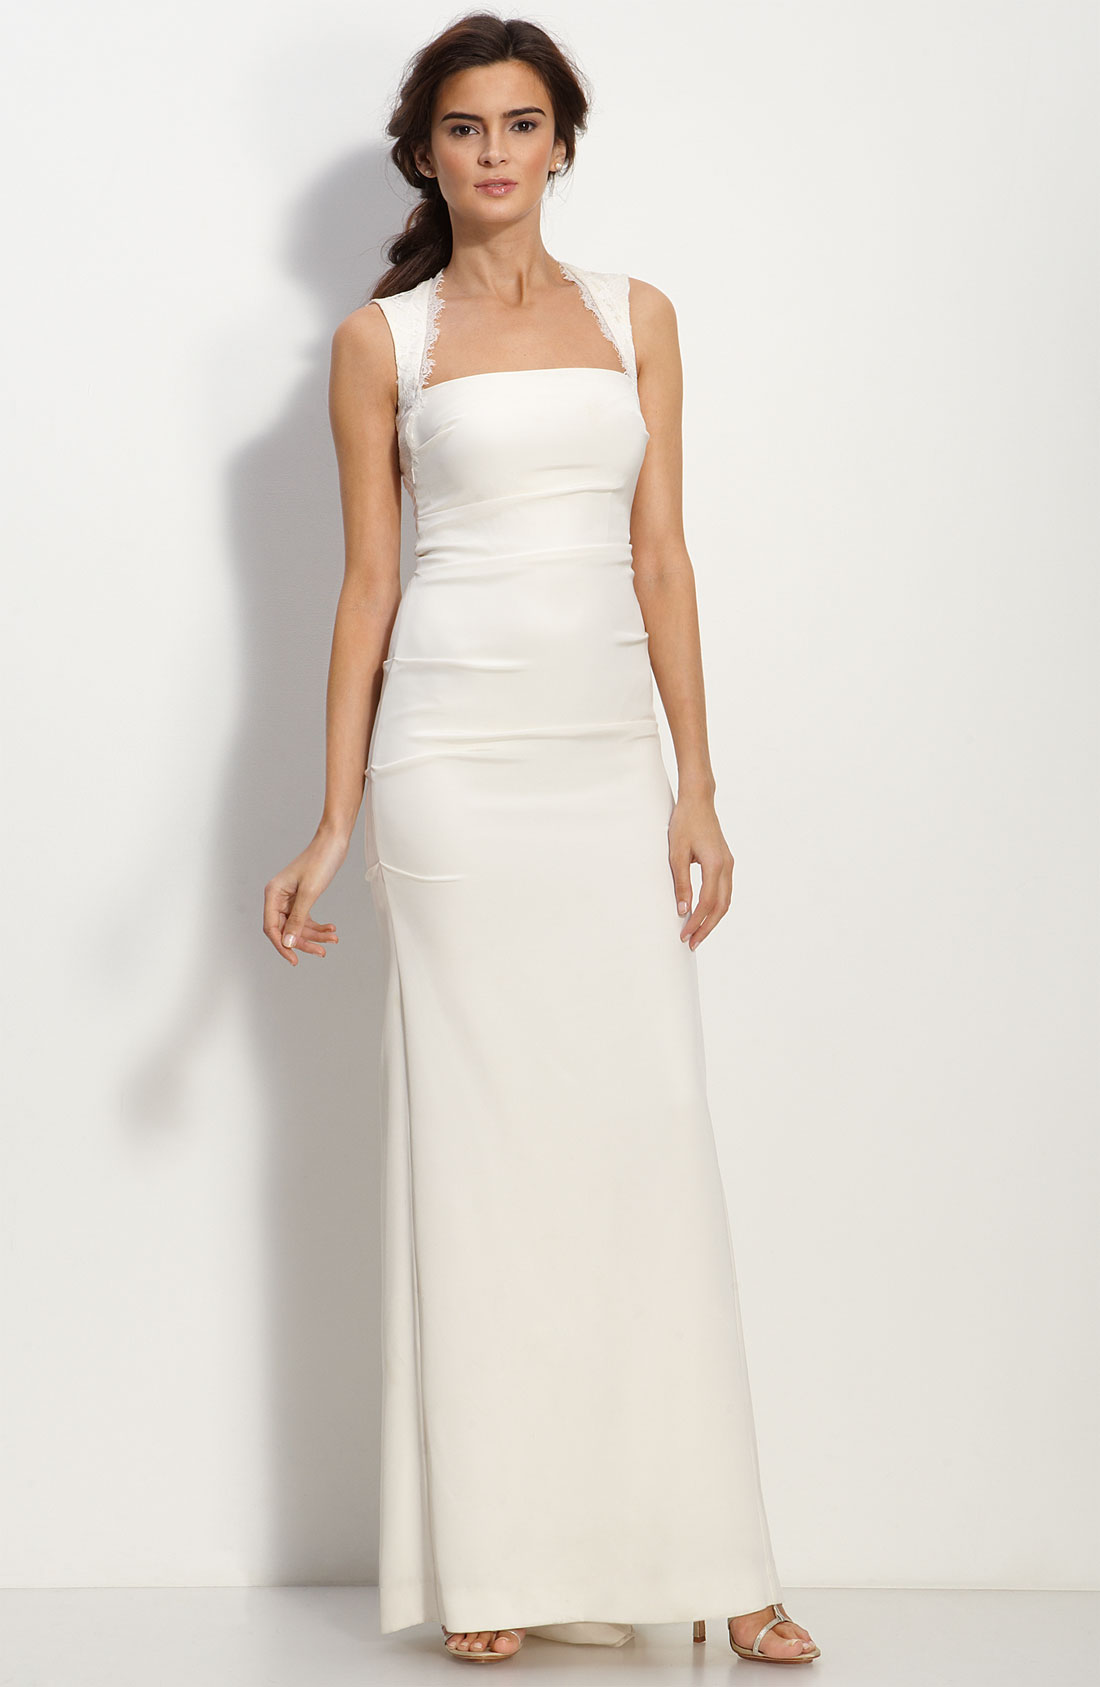 Nicole Miller Cutout Back Crpe De Chine Gown in White